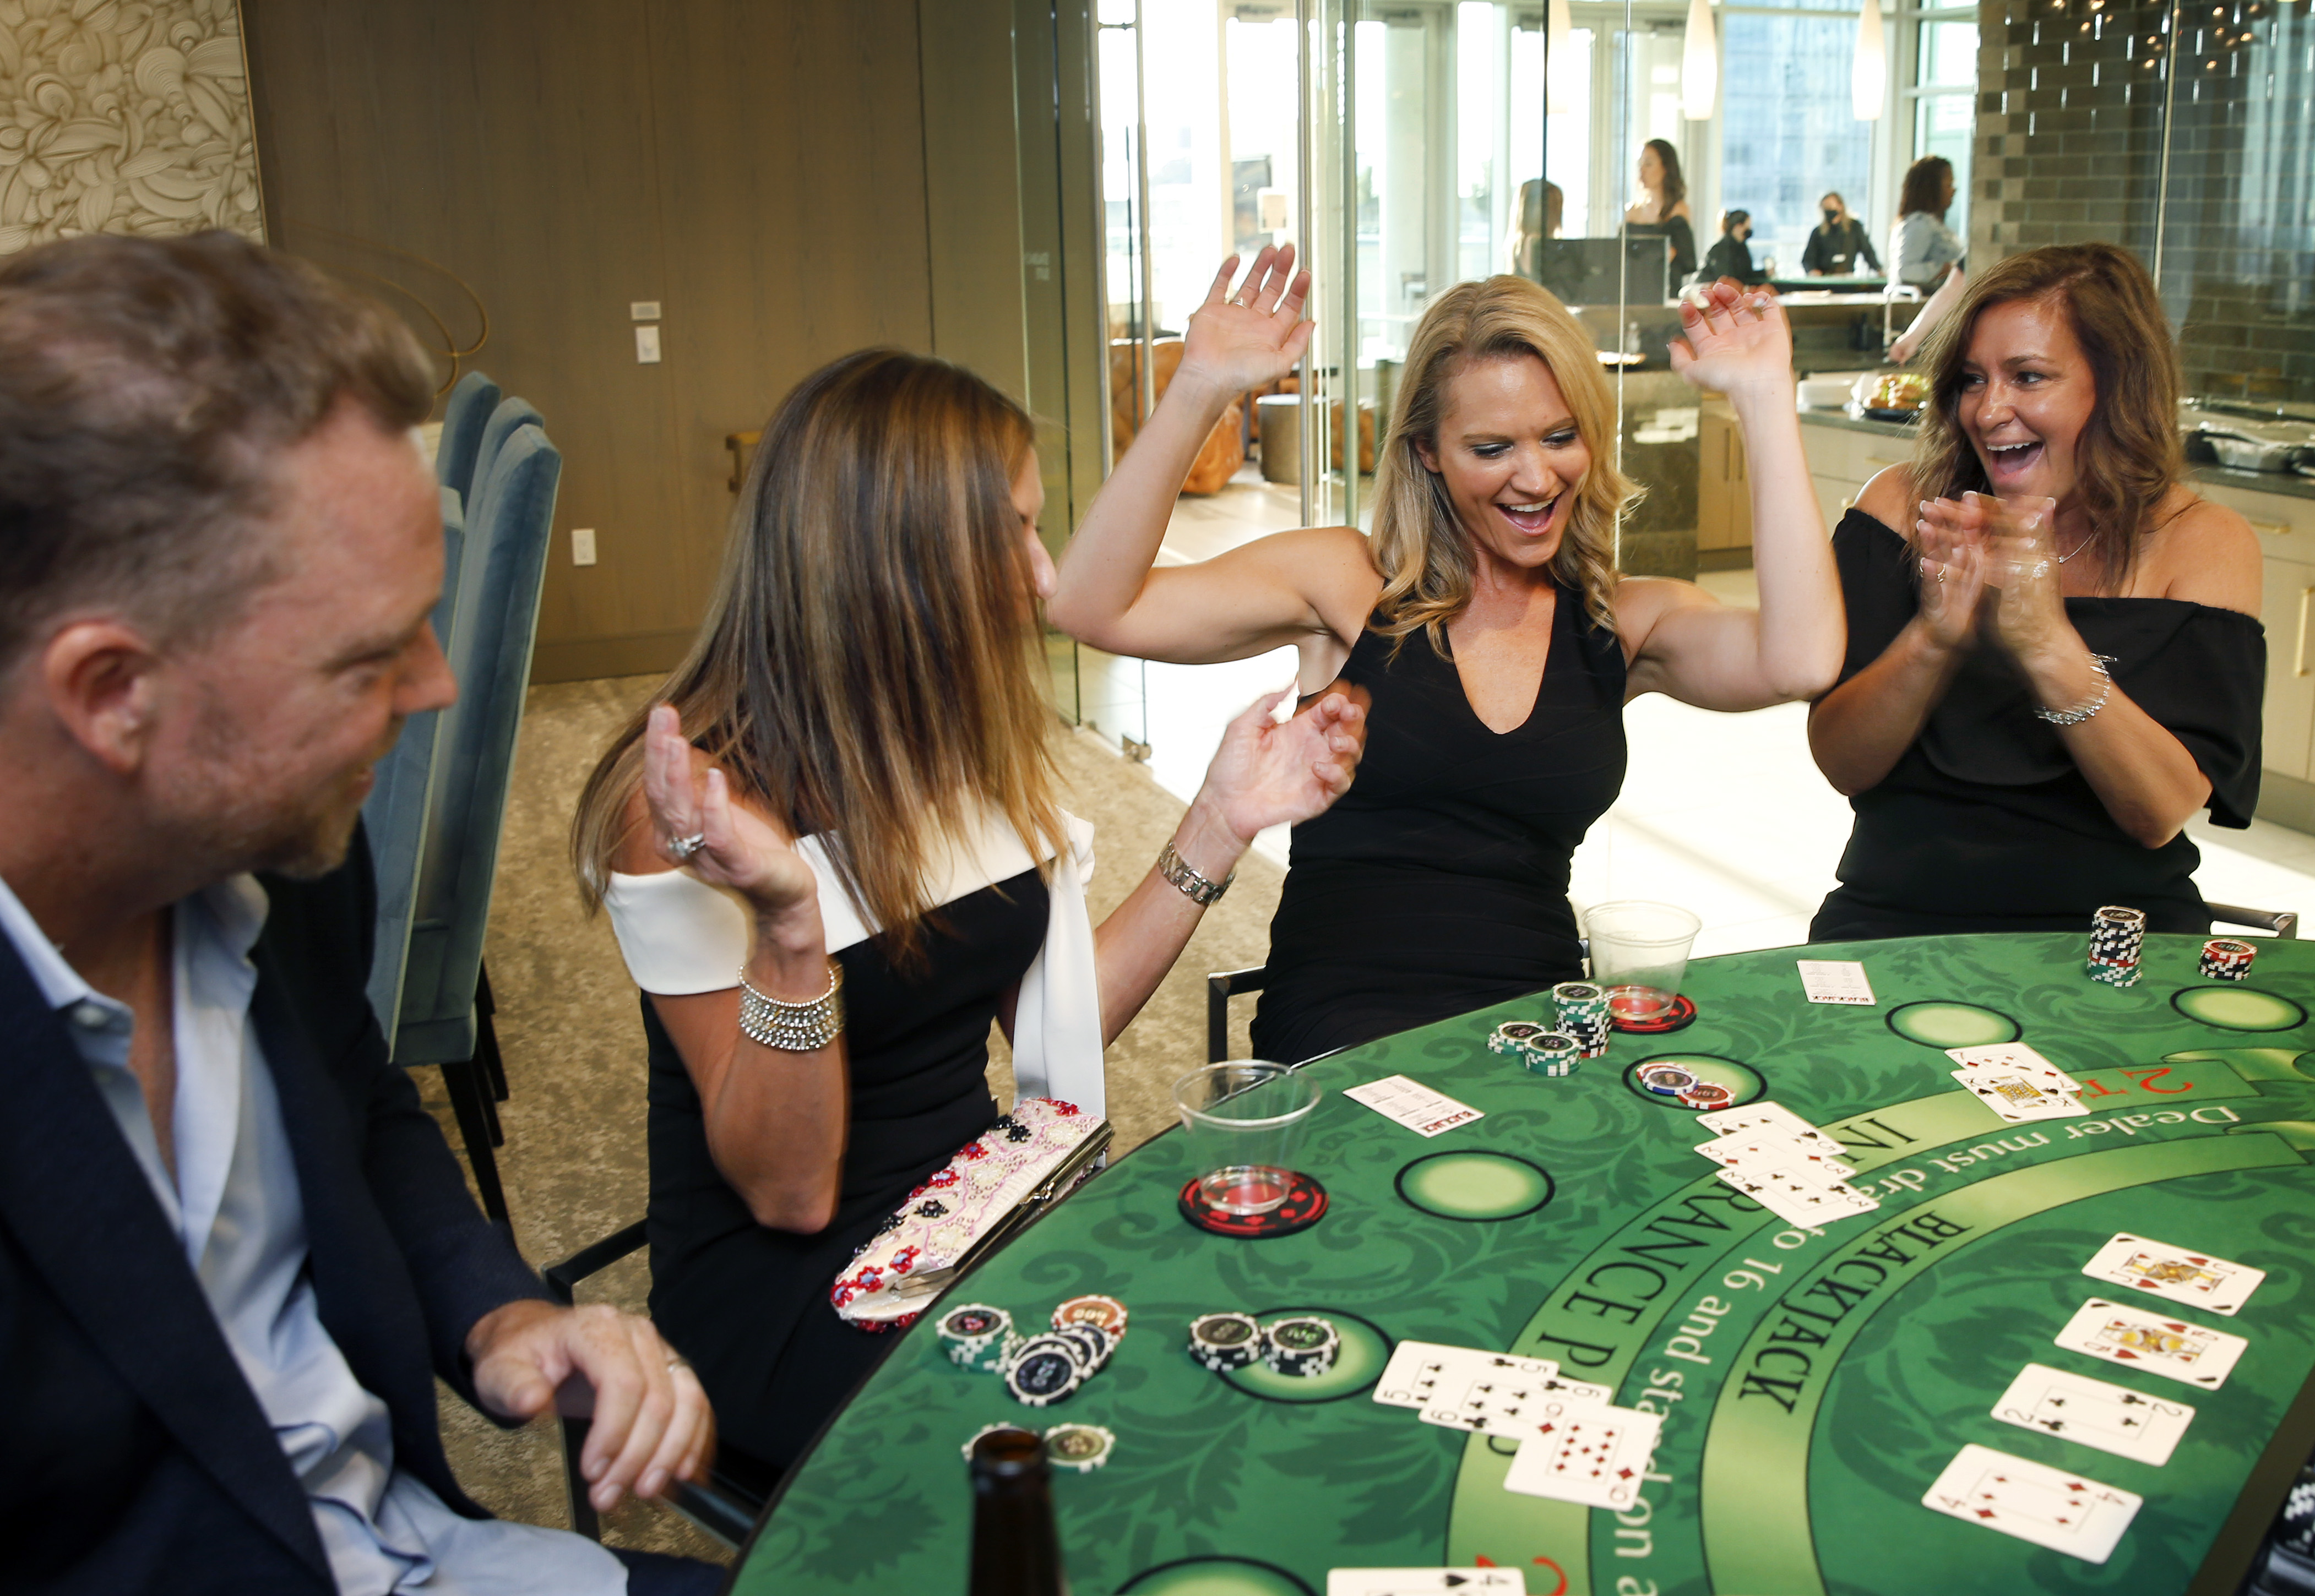 Most Texans want casino gambling, but lawmakers unwilling to roll the dice